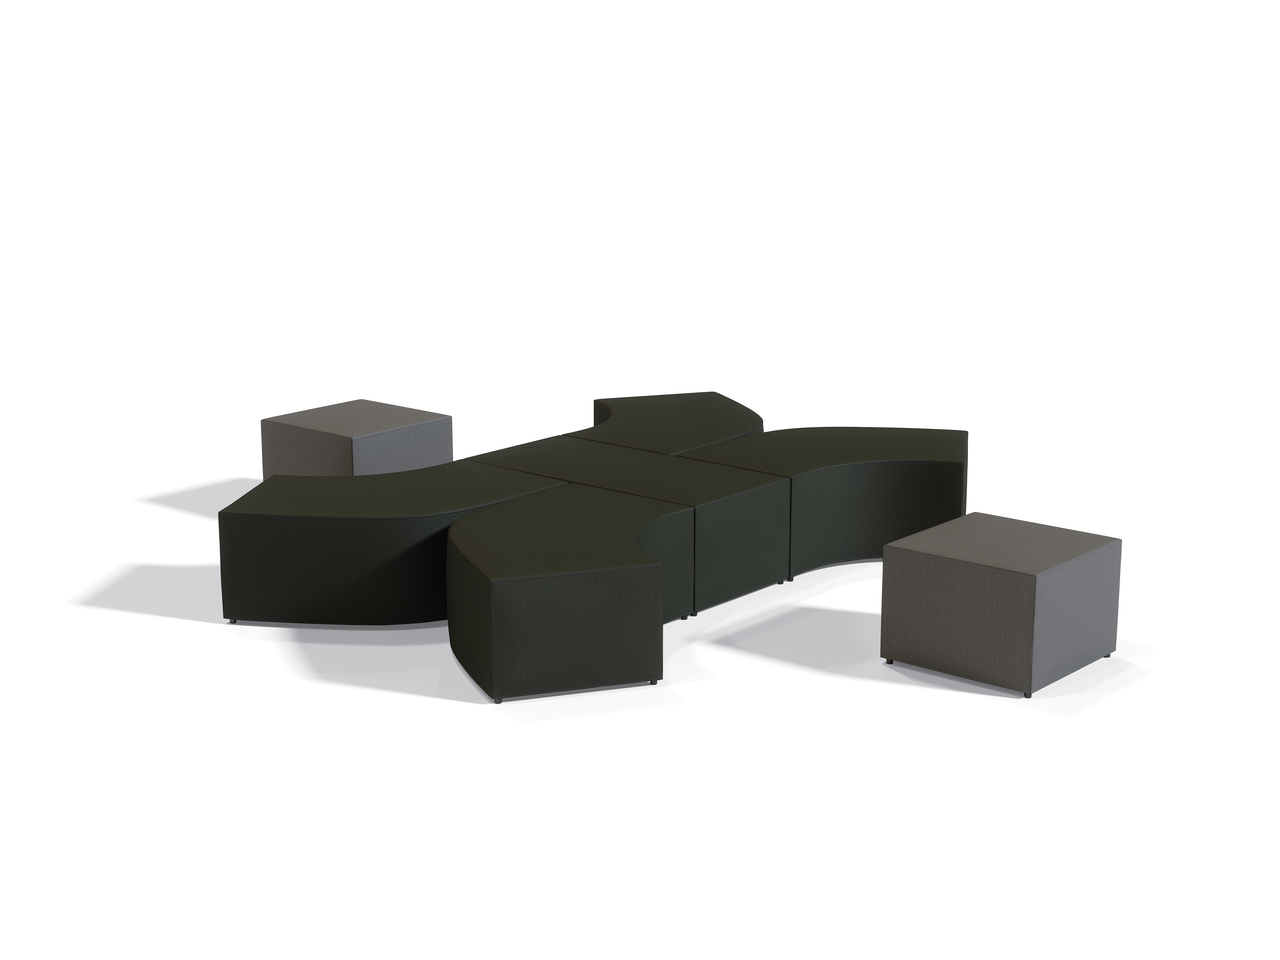 offices to go modular ottoman seating configuration with two tone upholstery